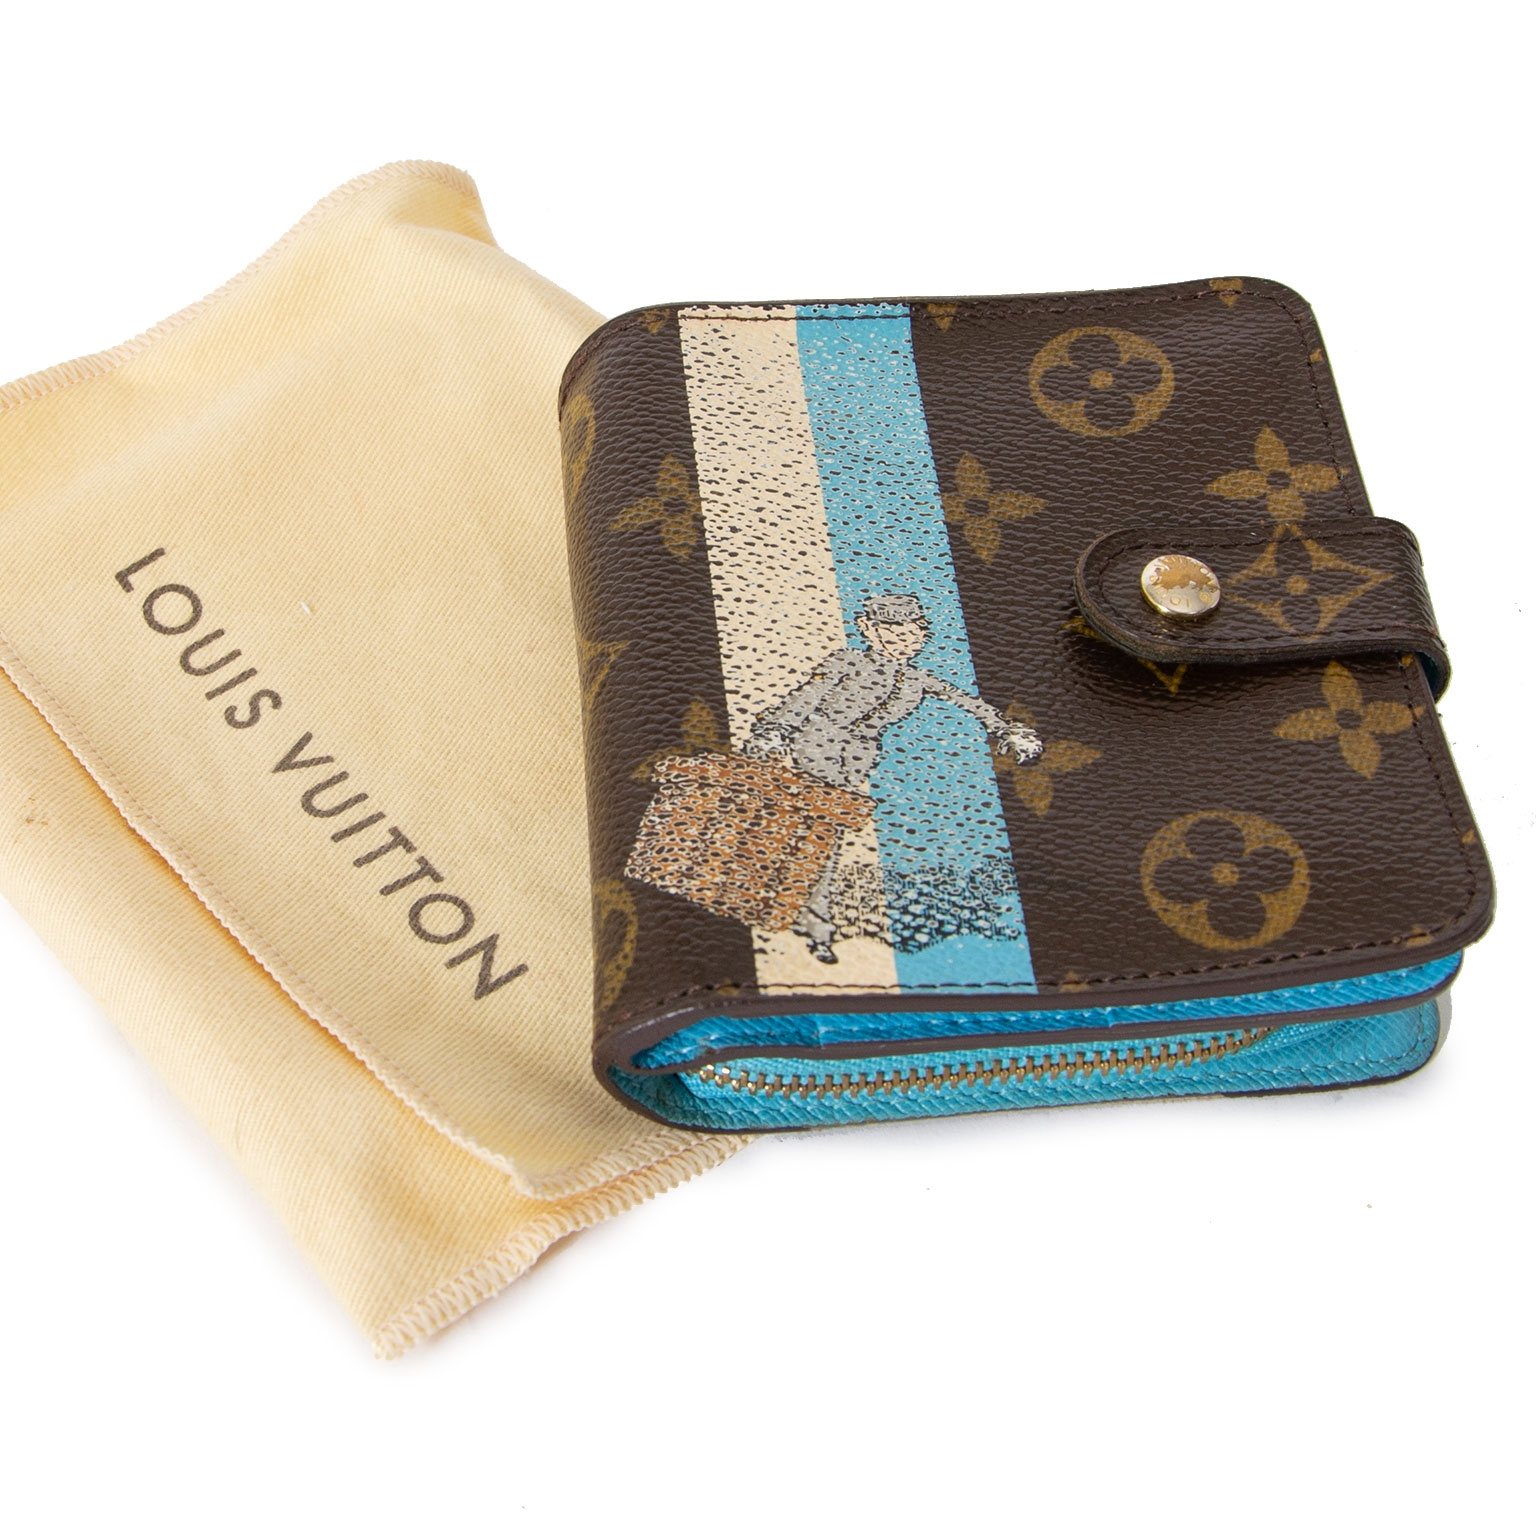 louis vuitton monogram tintin bellboy grooms wallet now for sale at labellov vintage fashion webshop belgium